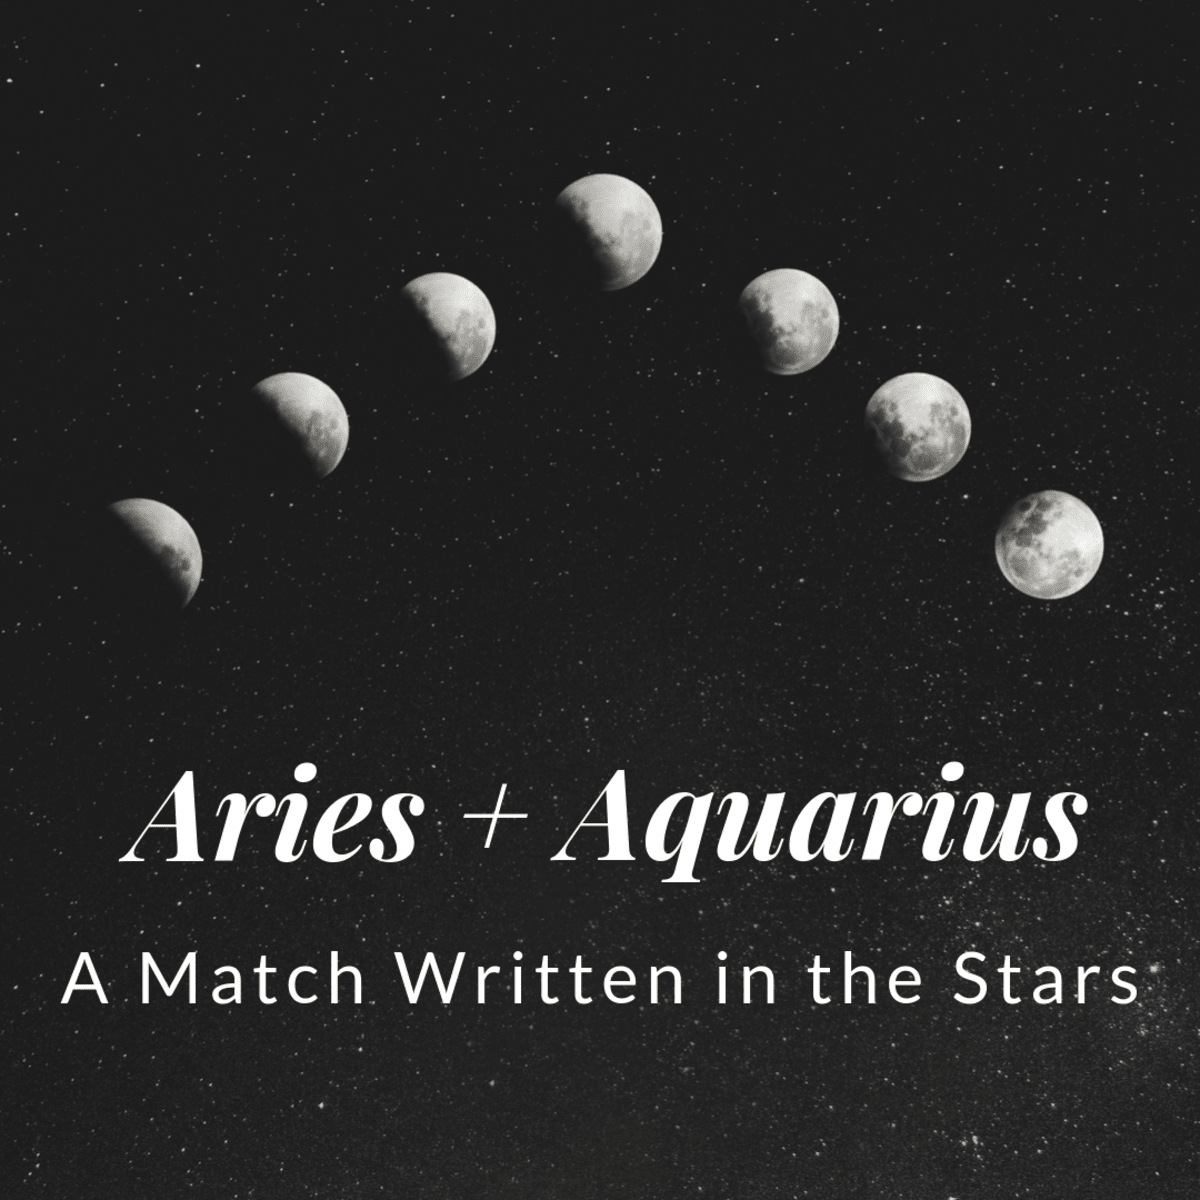 Which Astrological Sign Is Most Compatible With Aquarius